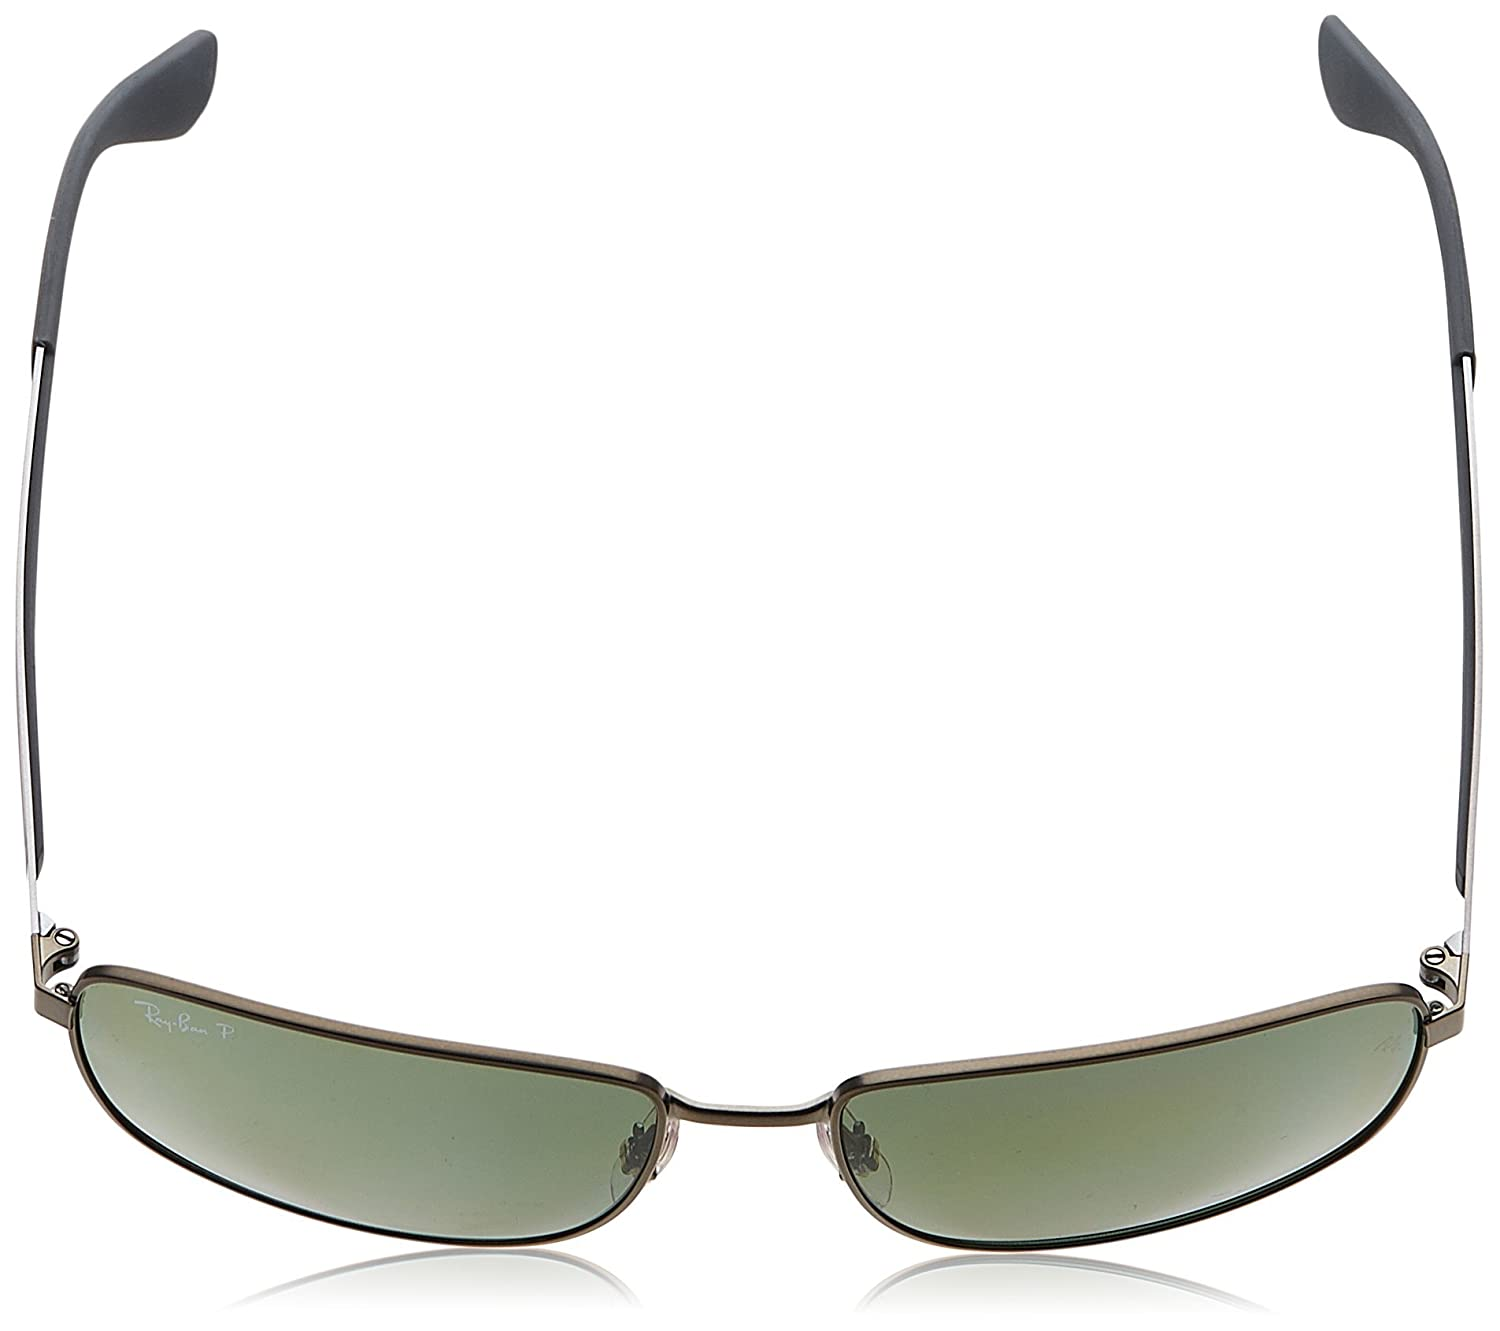 9babe1ba70 Amazon.com  Ray-Ban METAL MAN SUNGLASS - MATTE GUNMETAL Frame DARK GREEN  POLAR Lenses 61mm Polarized  Clothing